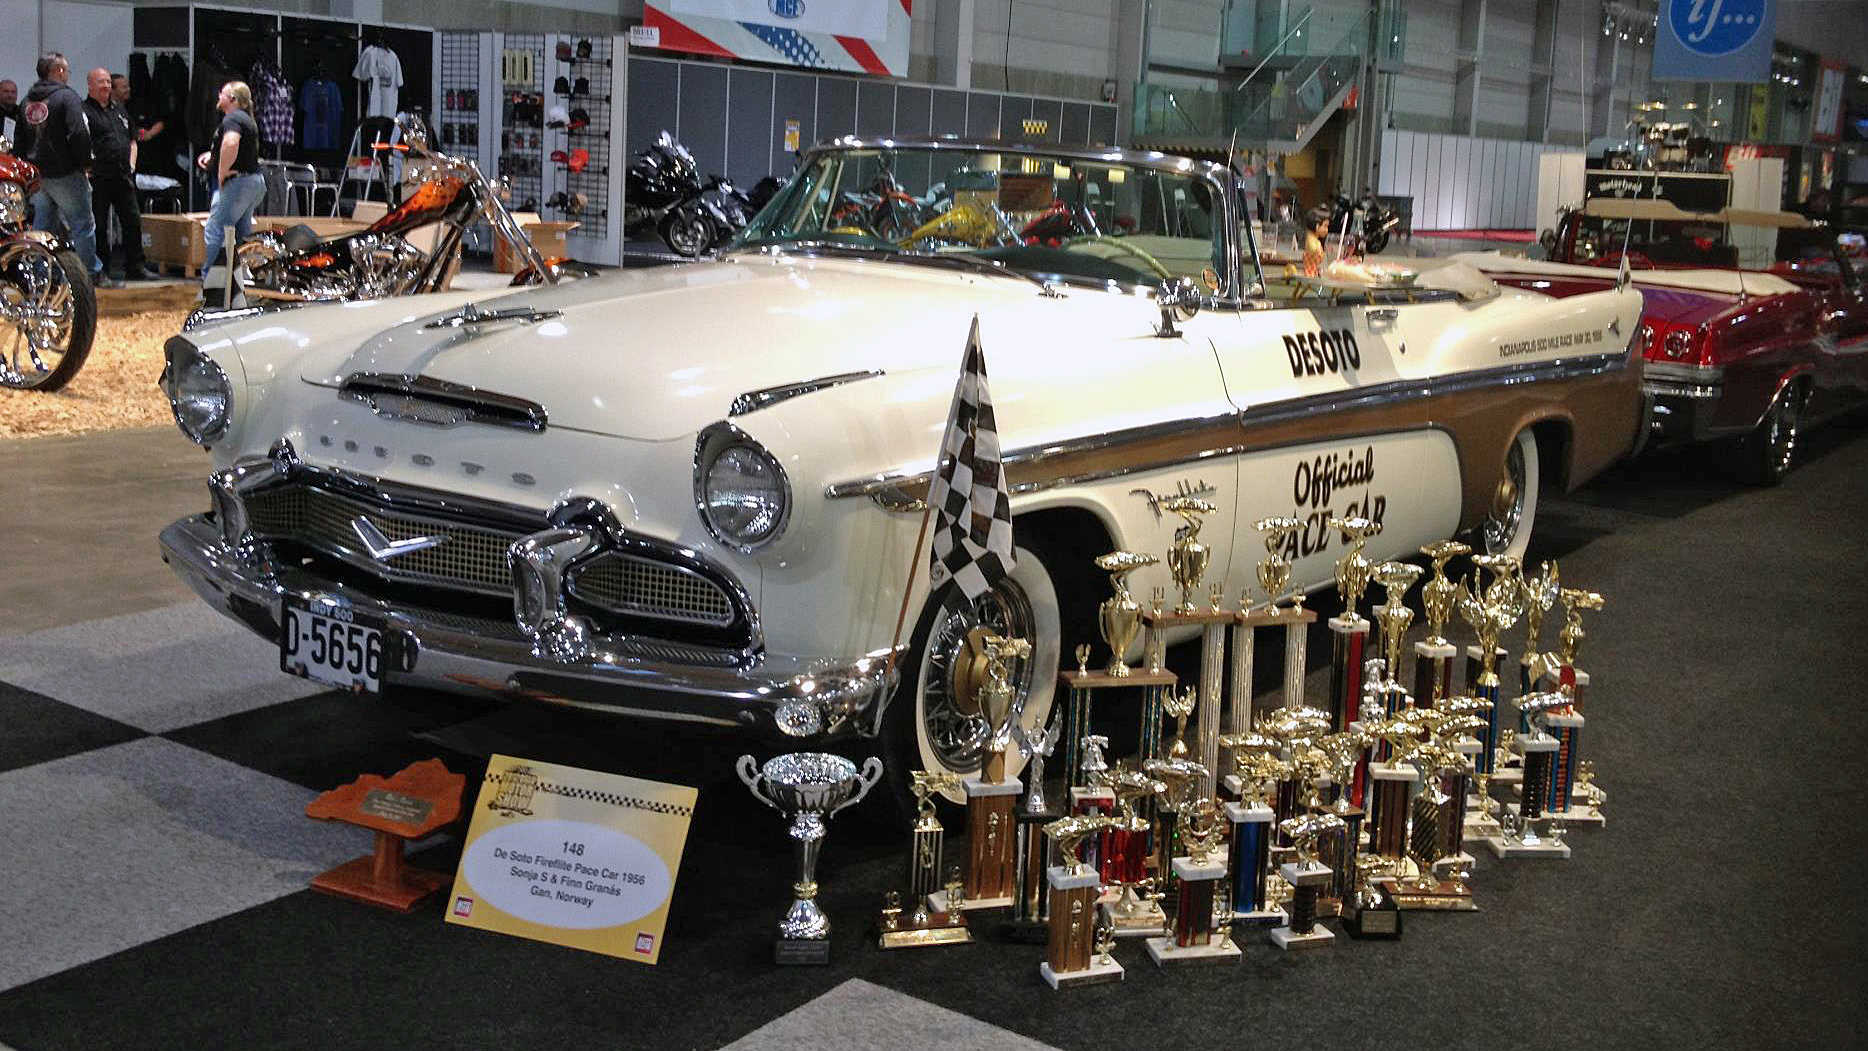 069-1956 Desoto Fireflite Indy Pace Car 03. Eiere-